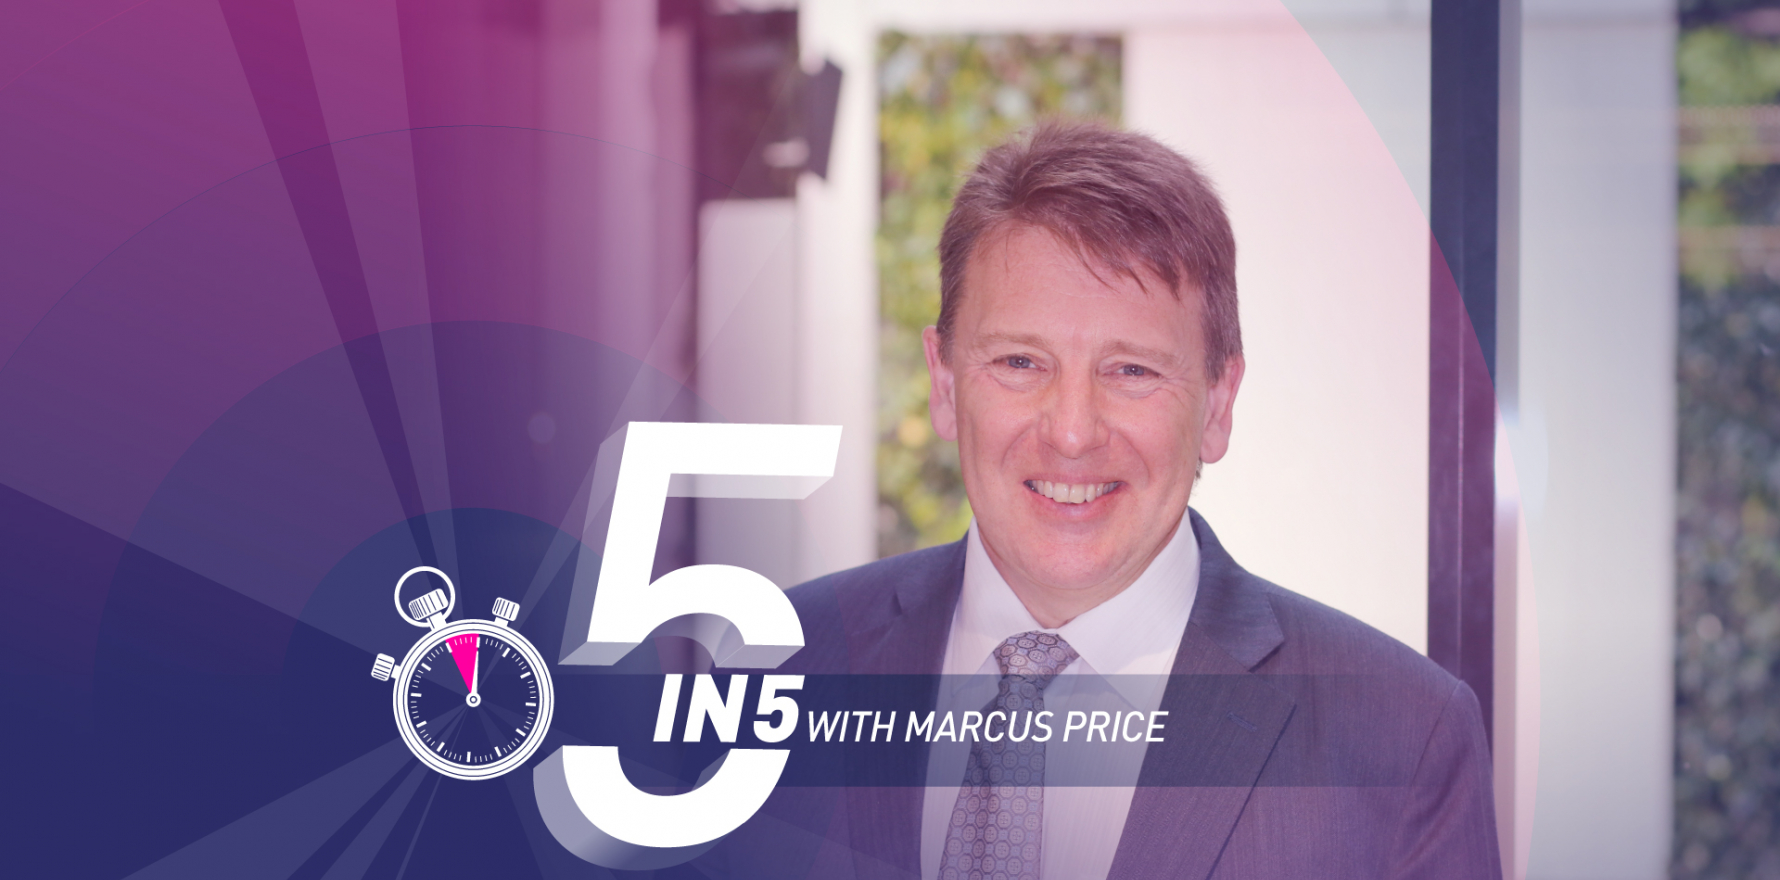 5 in 5 with Marcus Price